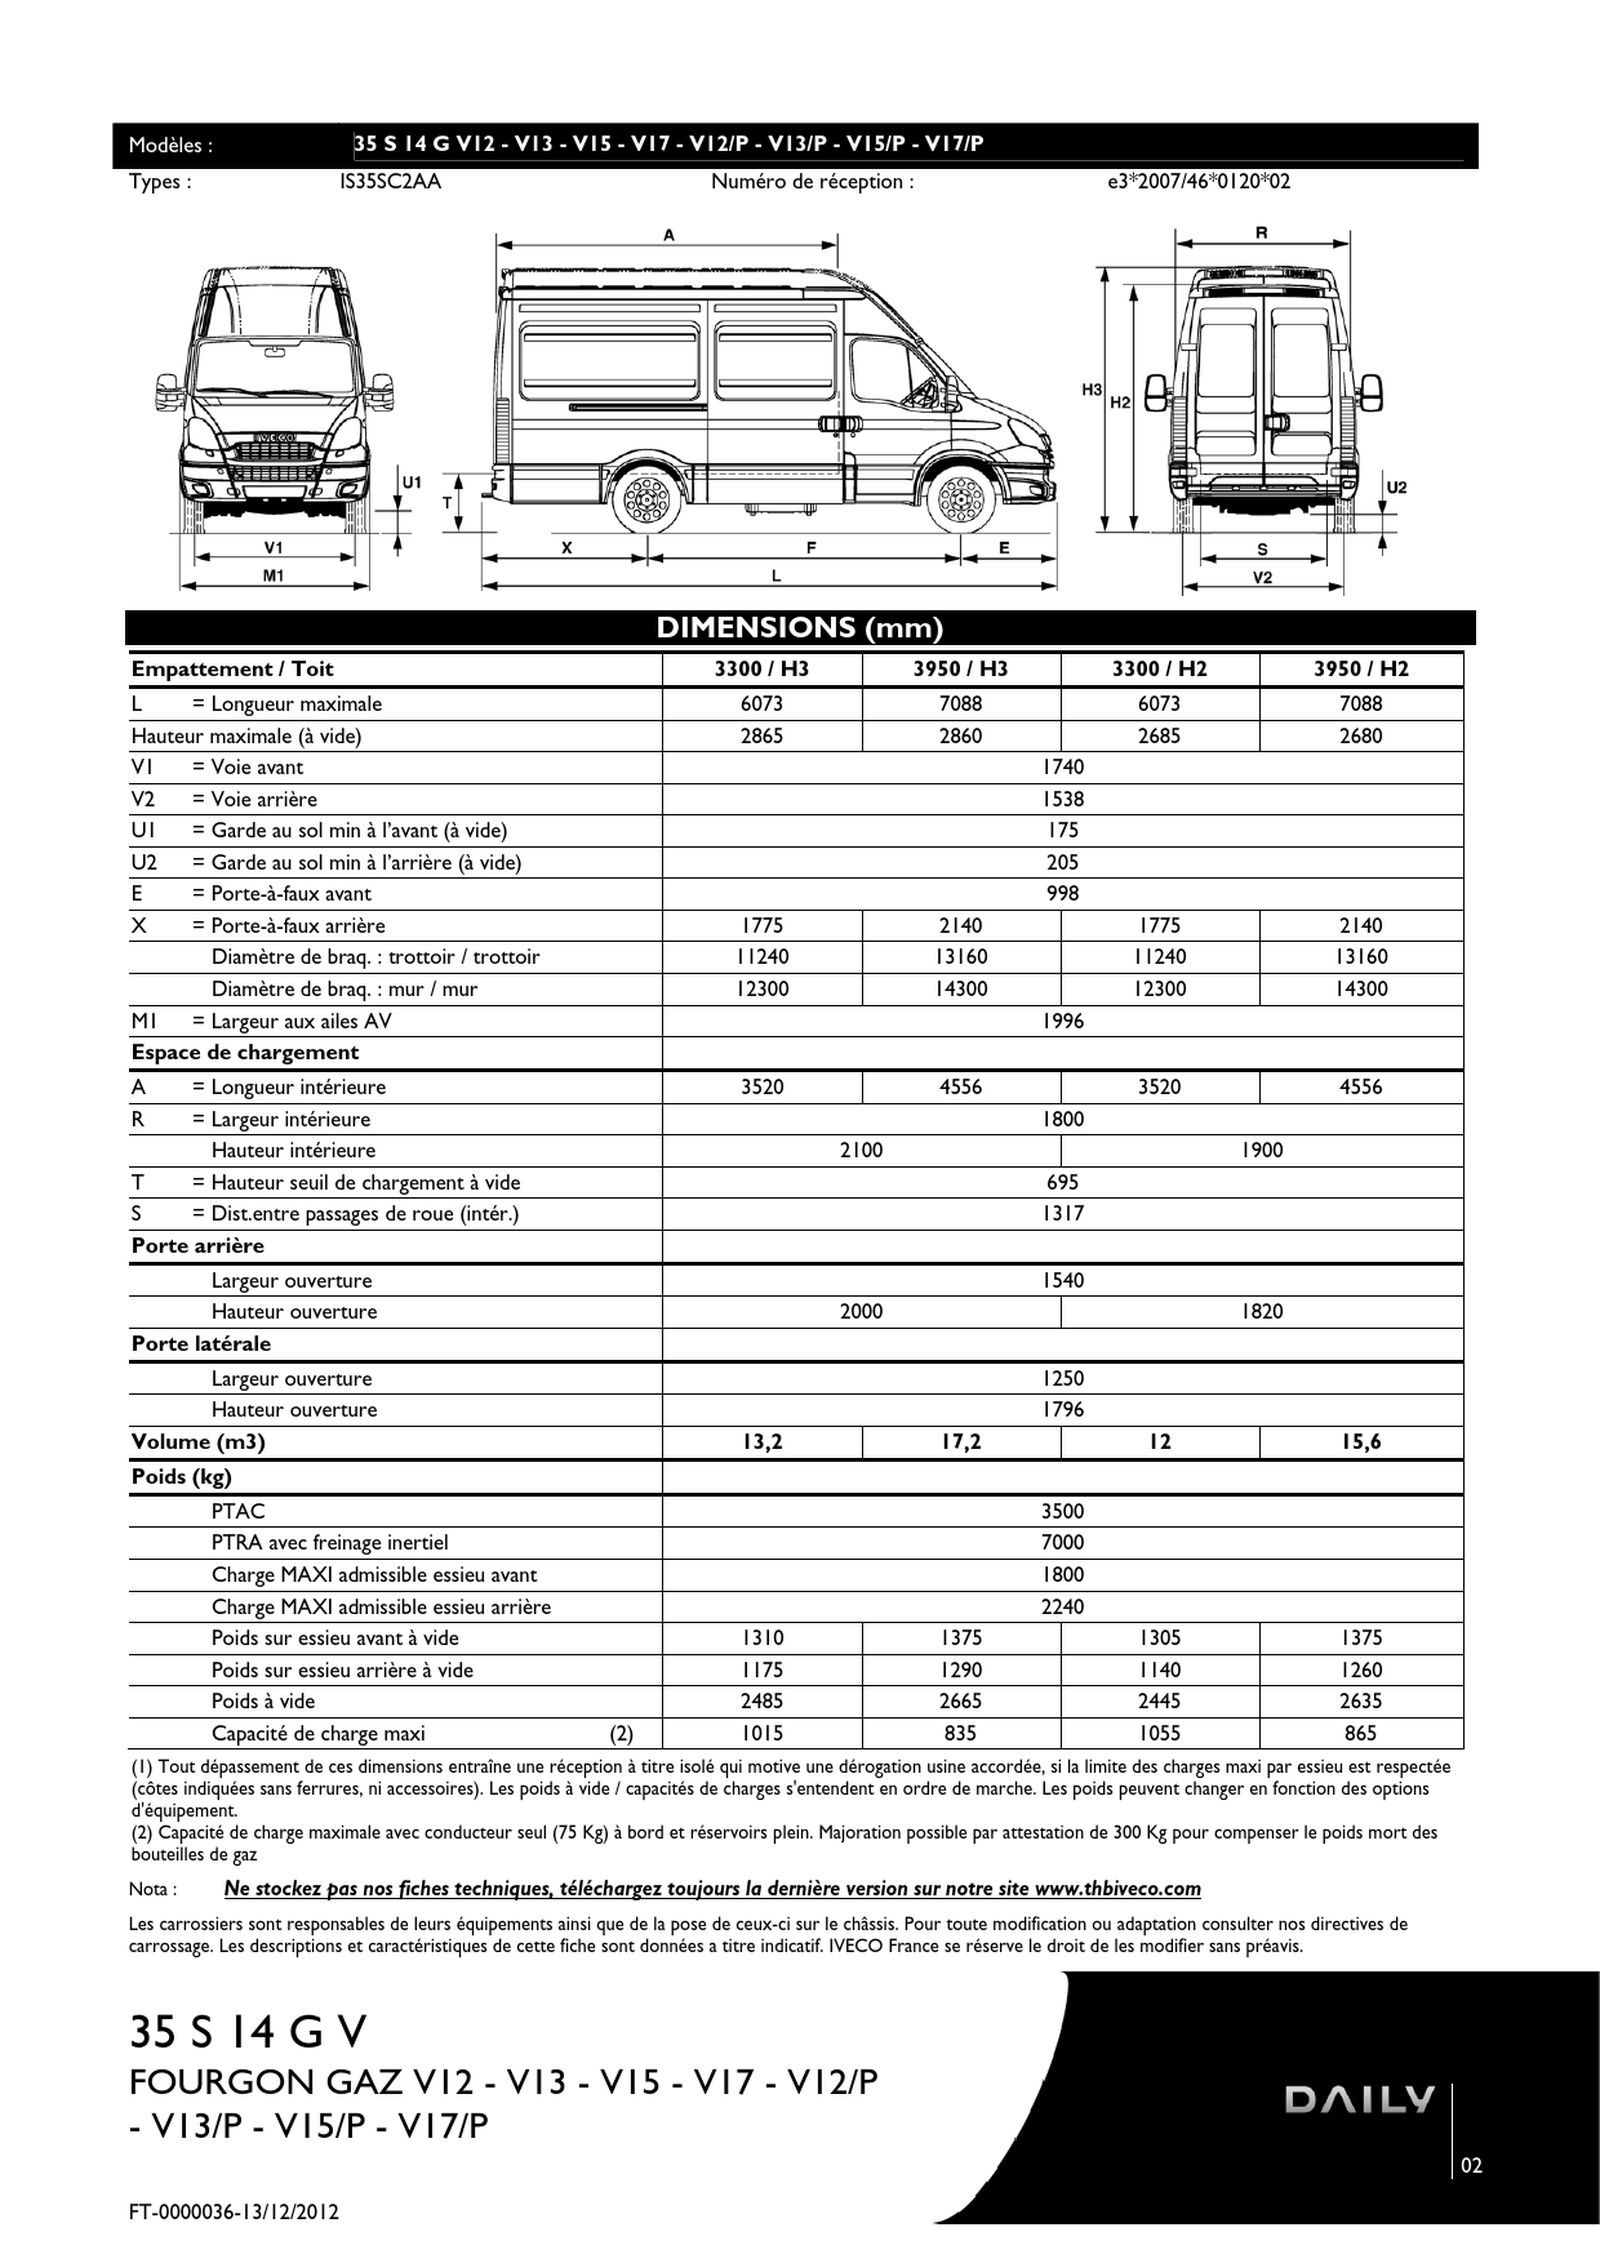 fiche technique IVECO DAILY FOURGON | PDF Flipbook